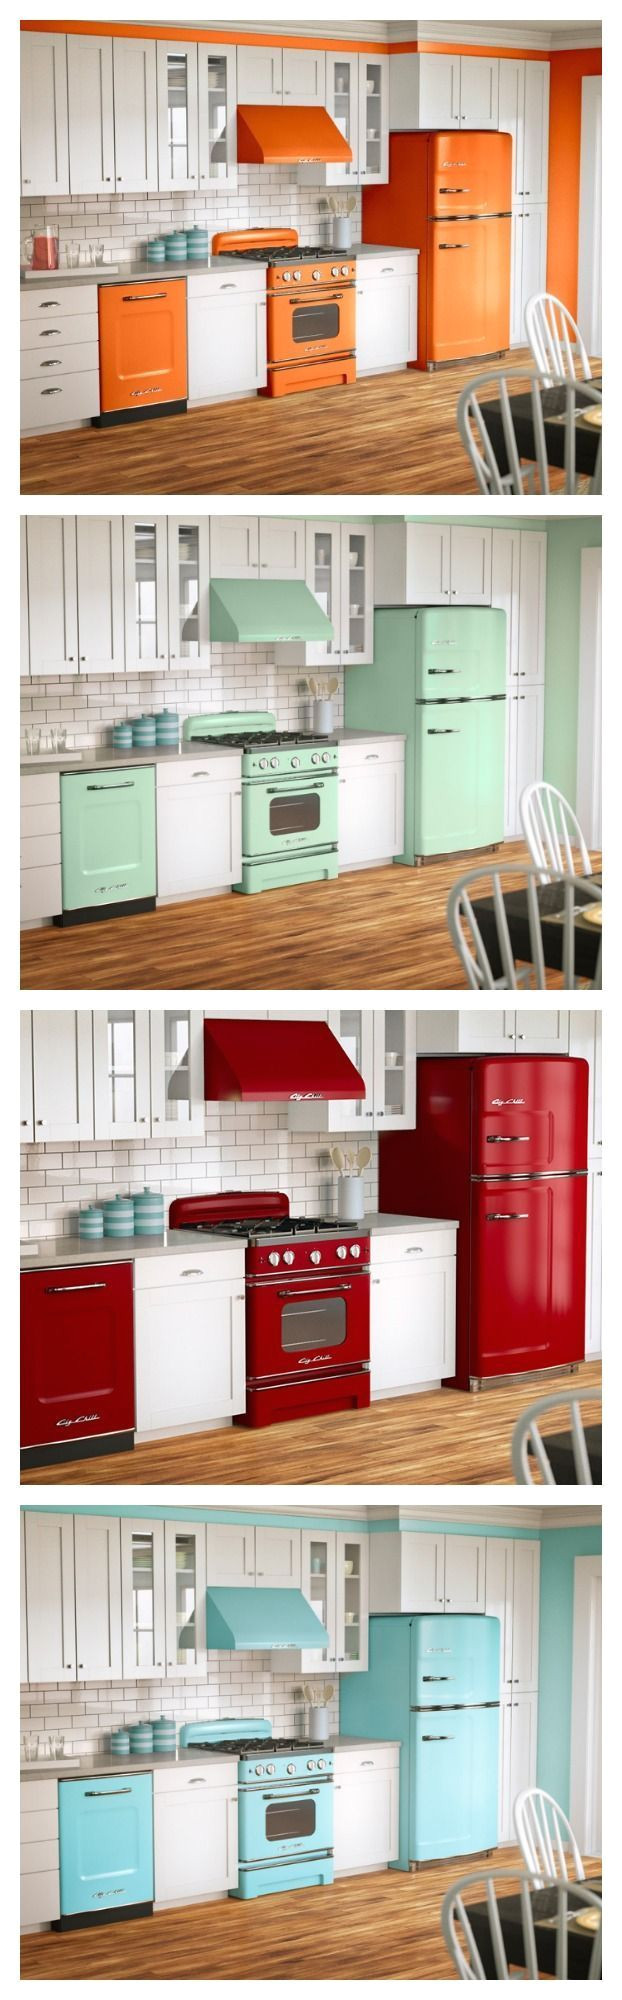 fun colors big style in a retro design fall in love with your kitchen